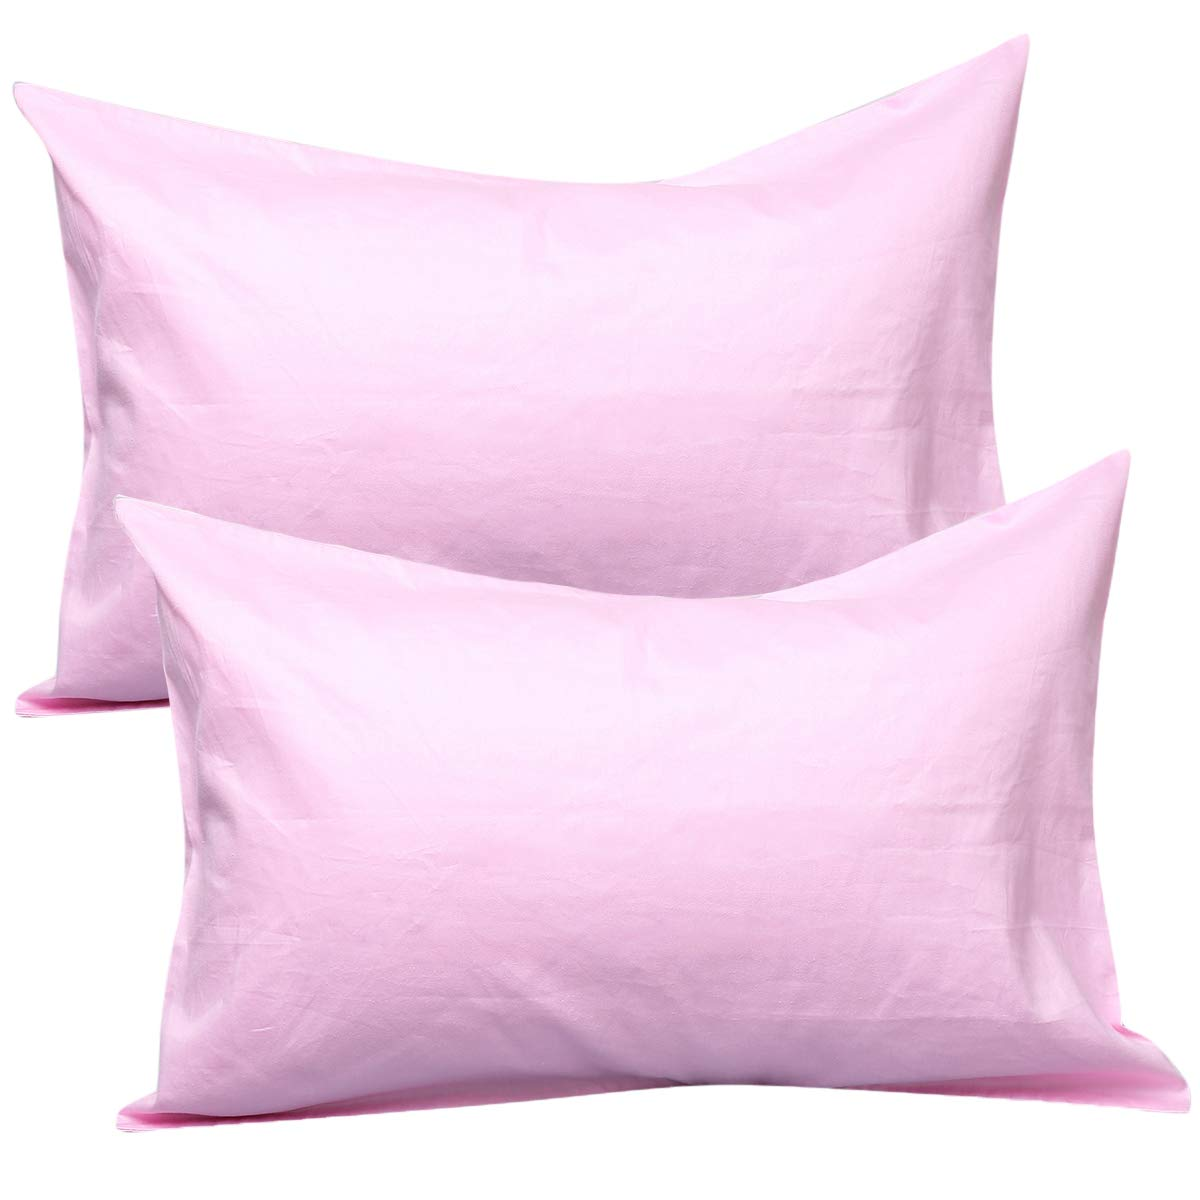 UOMNY Kid Pillowcases 2 Pack 100% Cotton Pillow Cover 14x20 Baby Pillow Cases for Sleeping Tiny Pillows case for Kids Solid Pillowcases Travel Pillowcases Pink Kids' Pillowcases